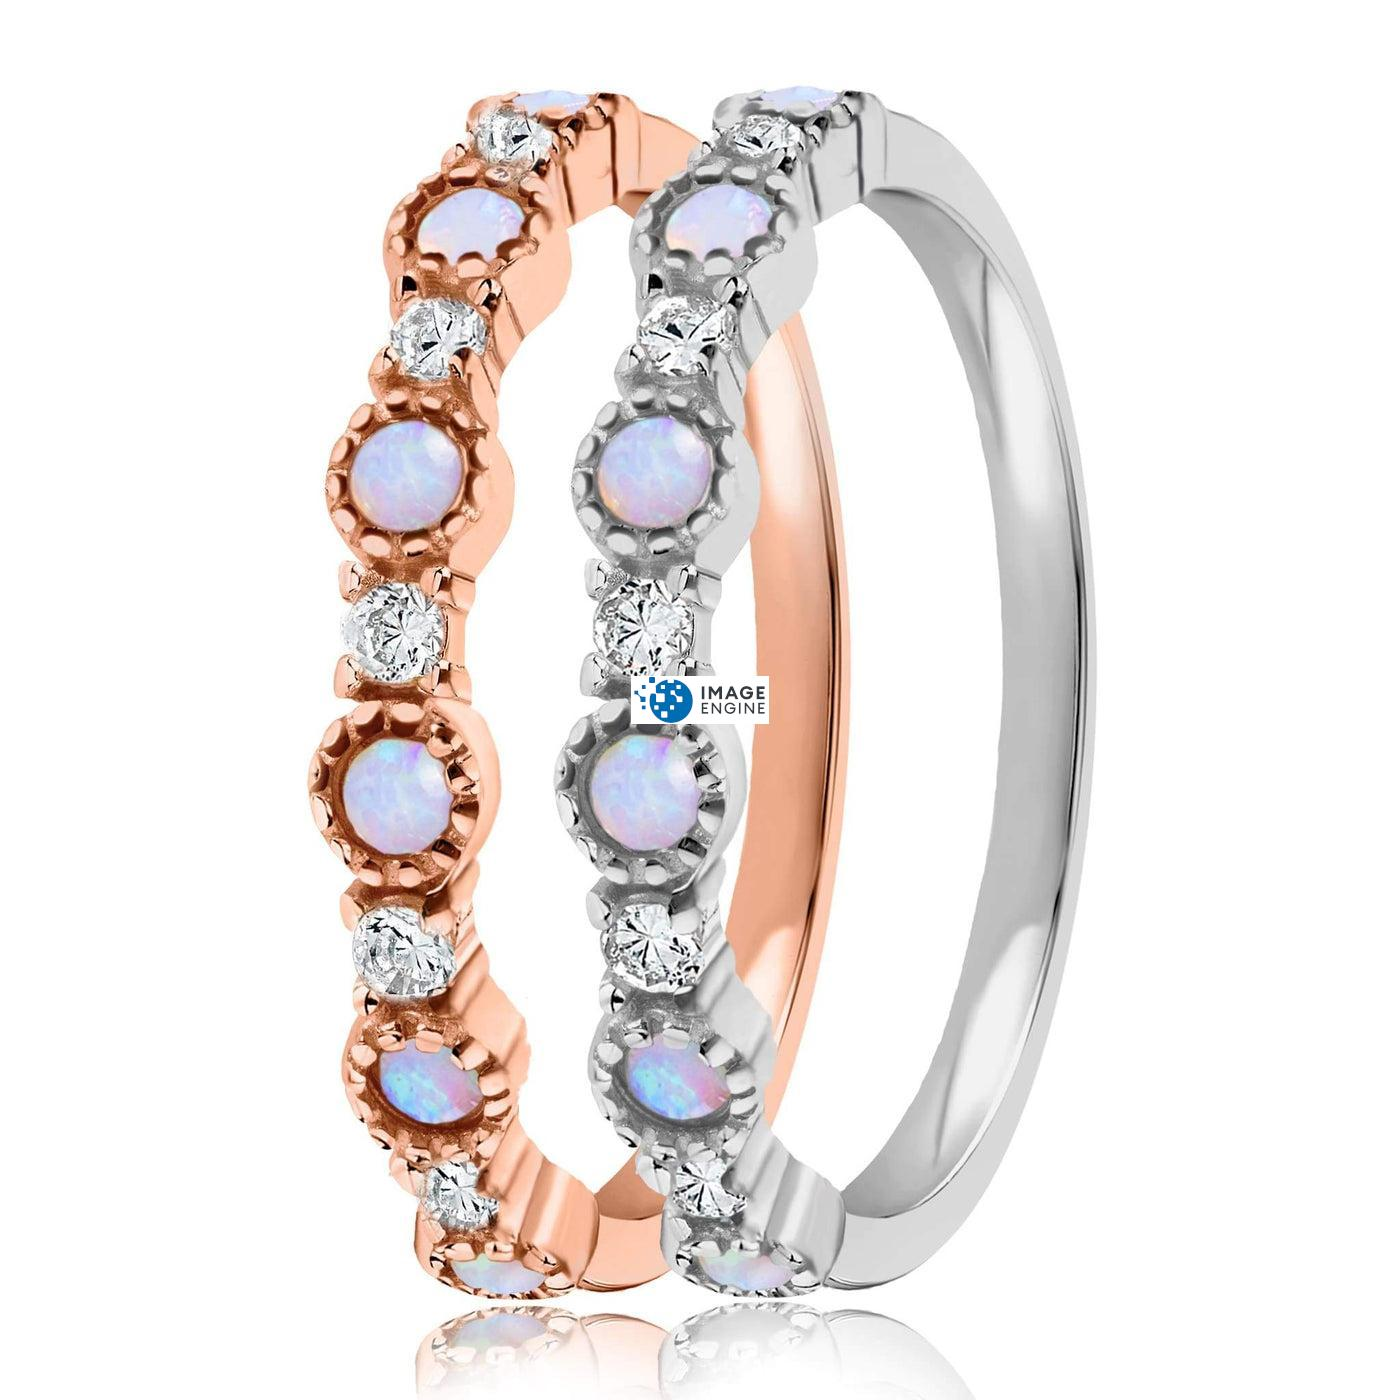 Debra Dots Opal Ring - Side by Side - 925 Sterling Silver and 18K Rose Gold Vermeil